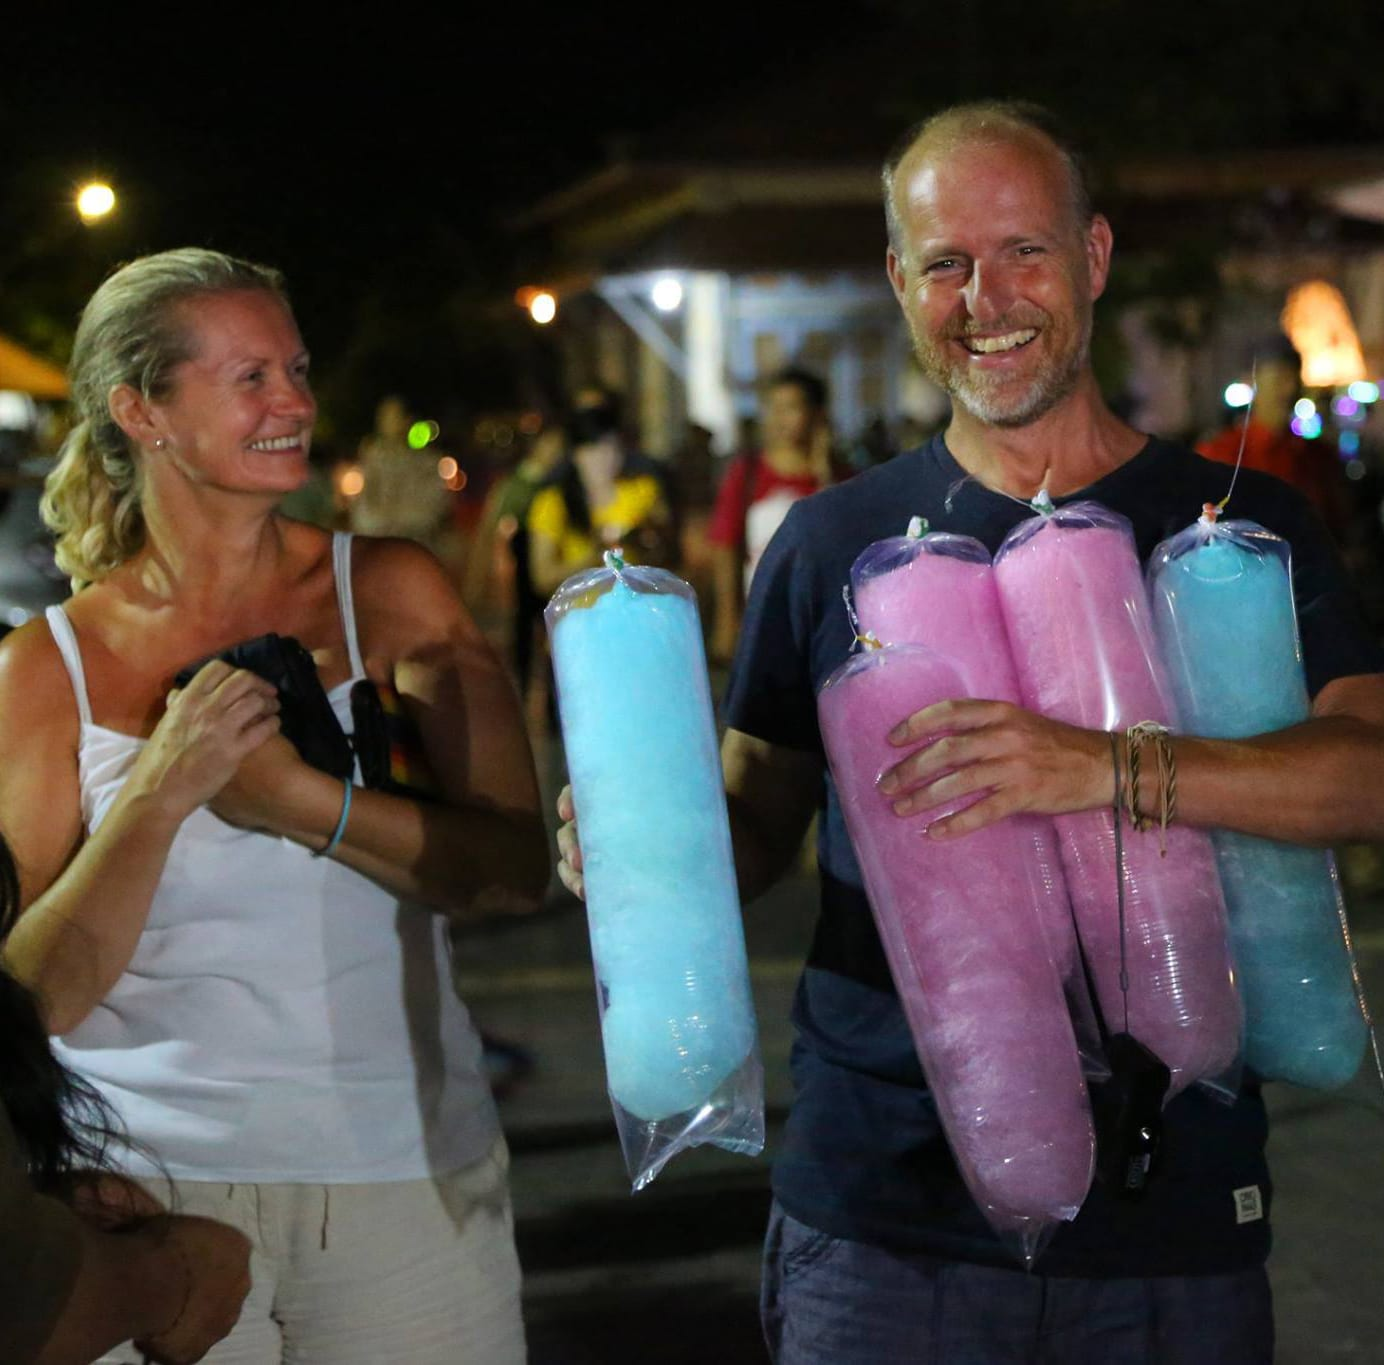 Larch and Alan with arms full of candy floss in Singaraja, Bali | The Silver Nomad